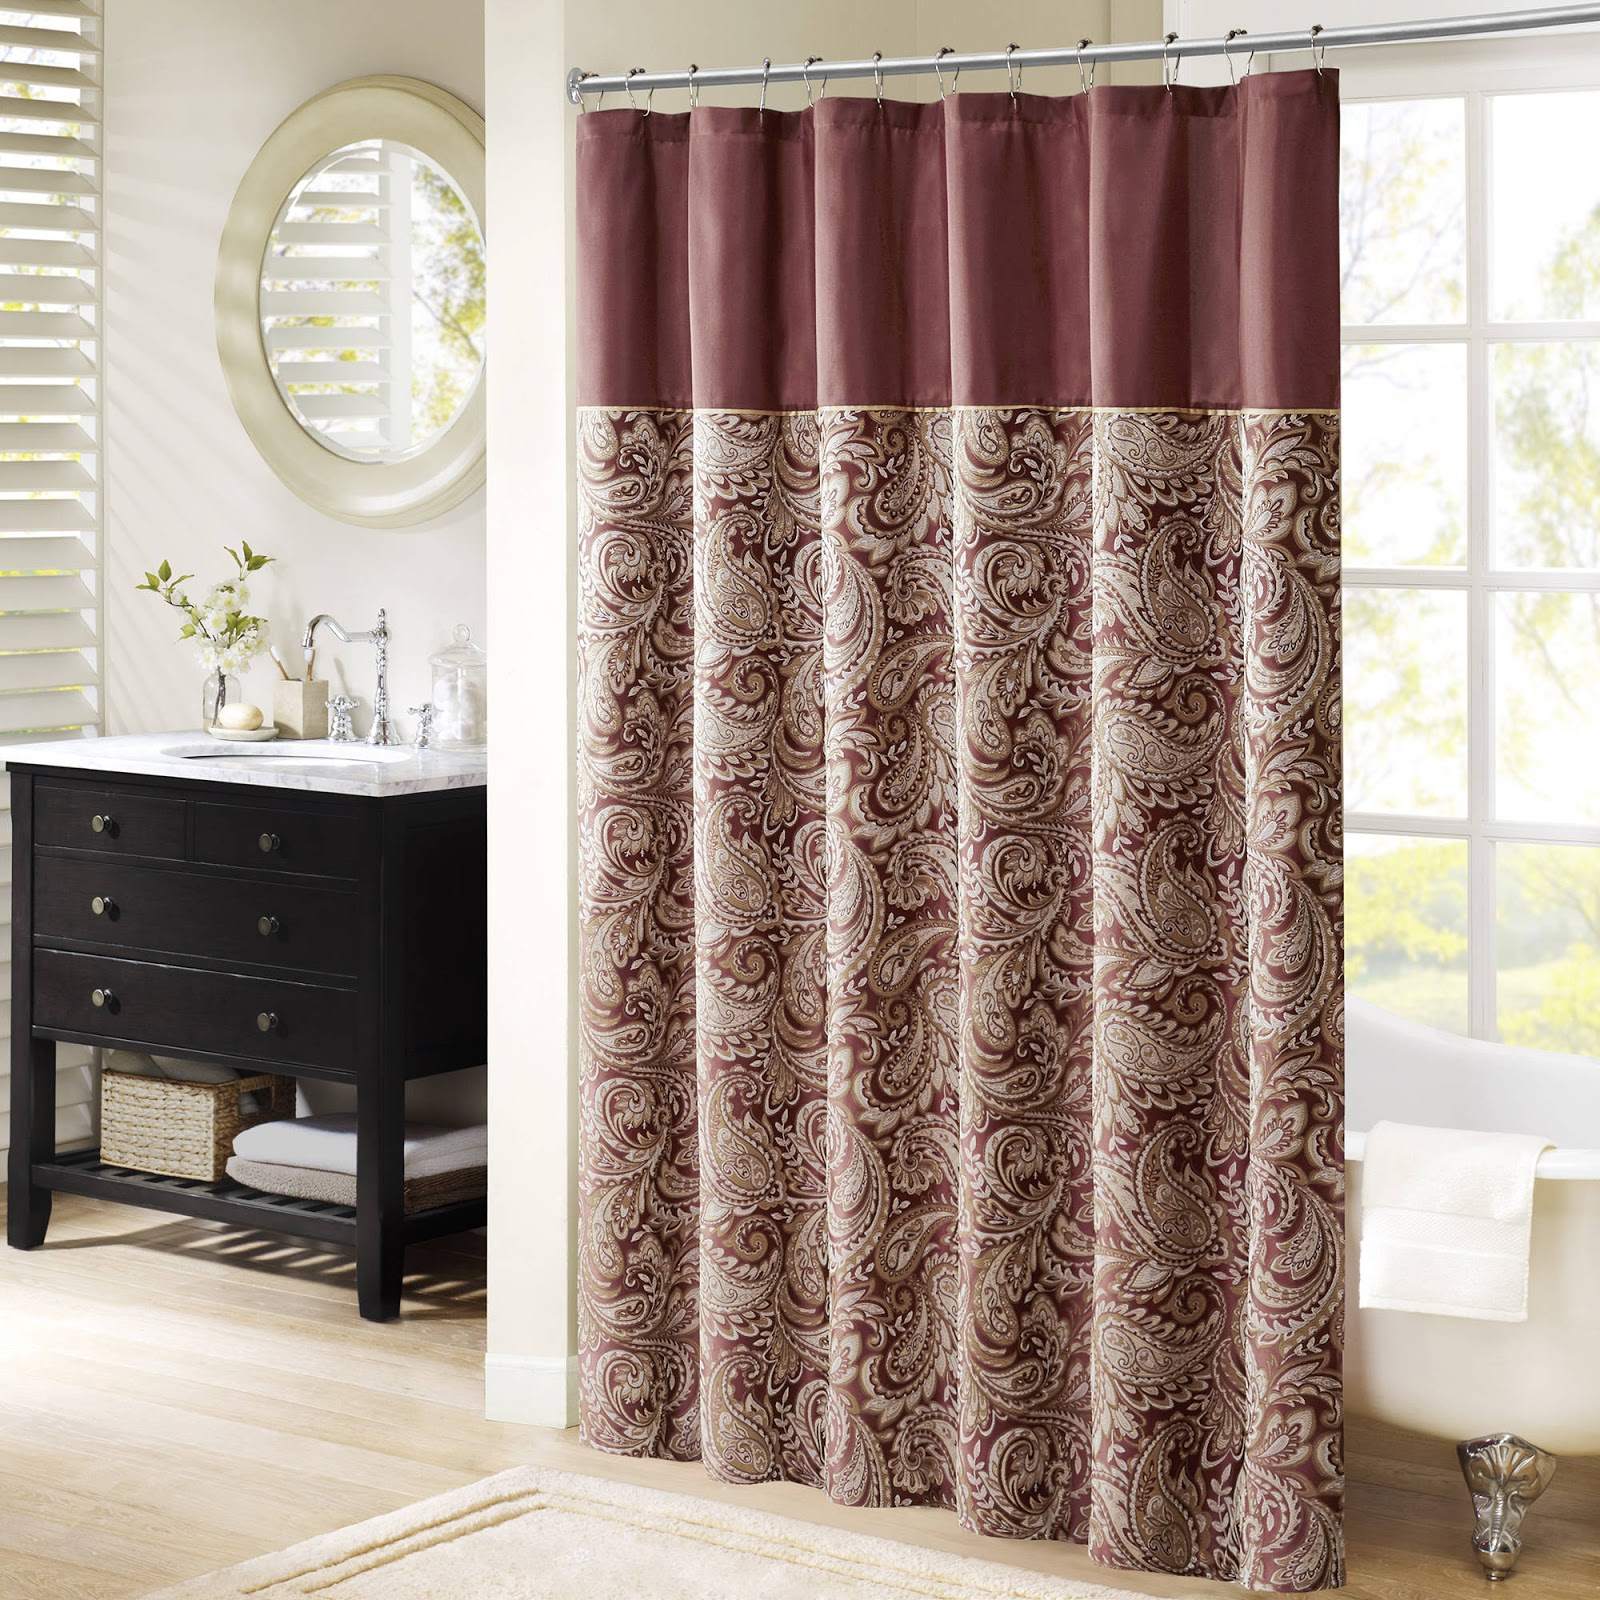 Curtains For Sliding Glass Doors With Vertical Blinds Patio Door Windows